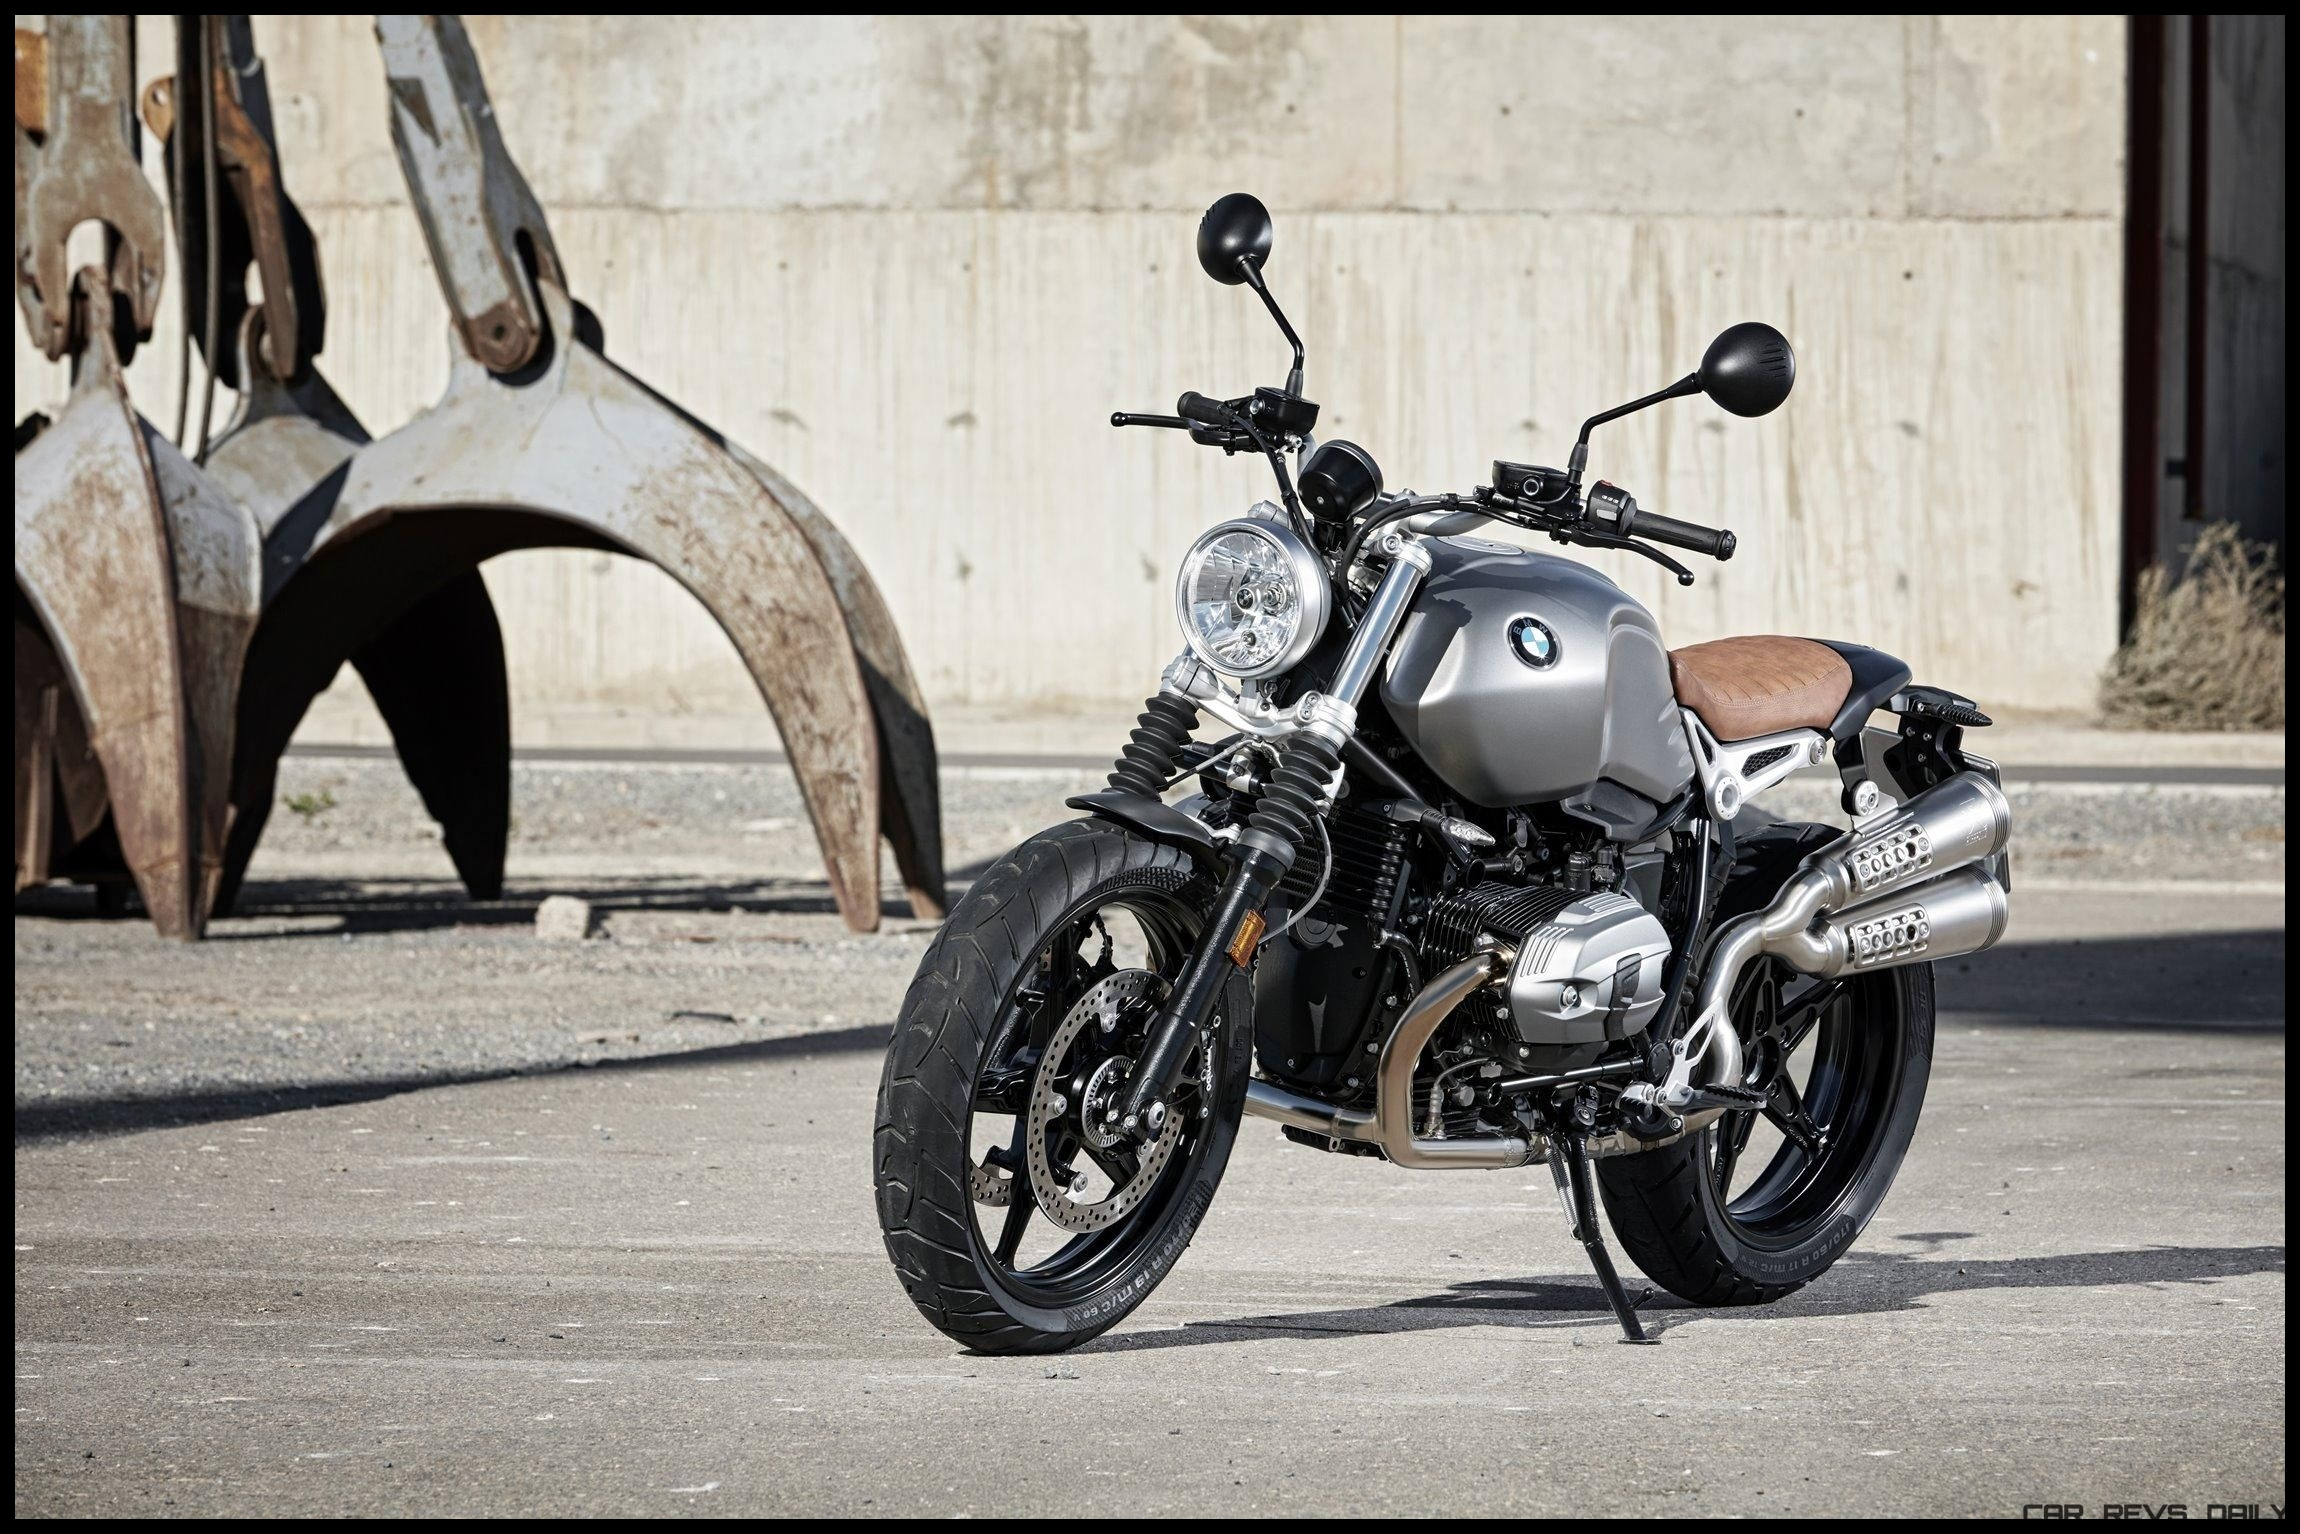 Last week we broke news that BMW released a scrambler version of their R nineT roadster They officially uncovered the bike at EICMA in Milan